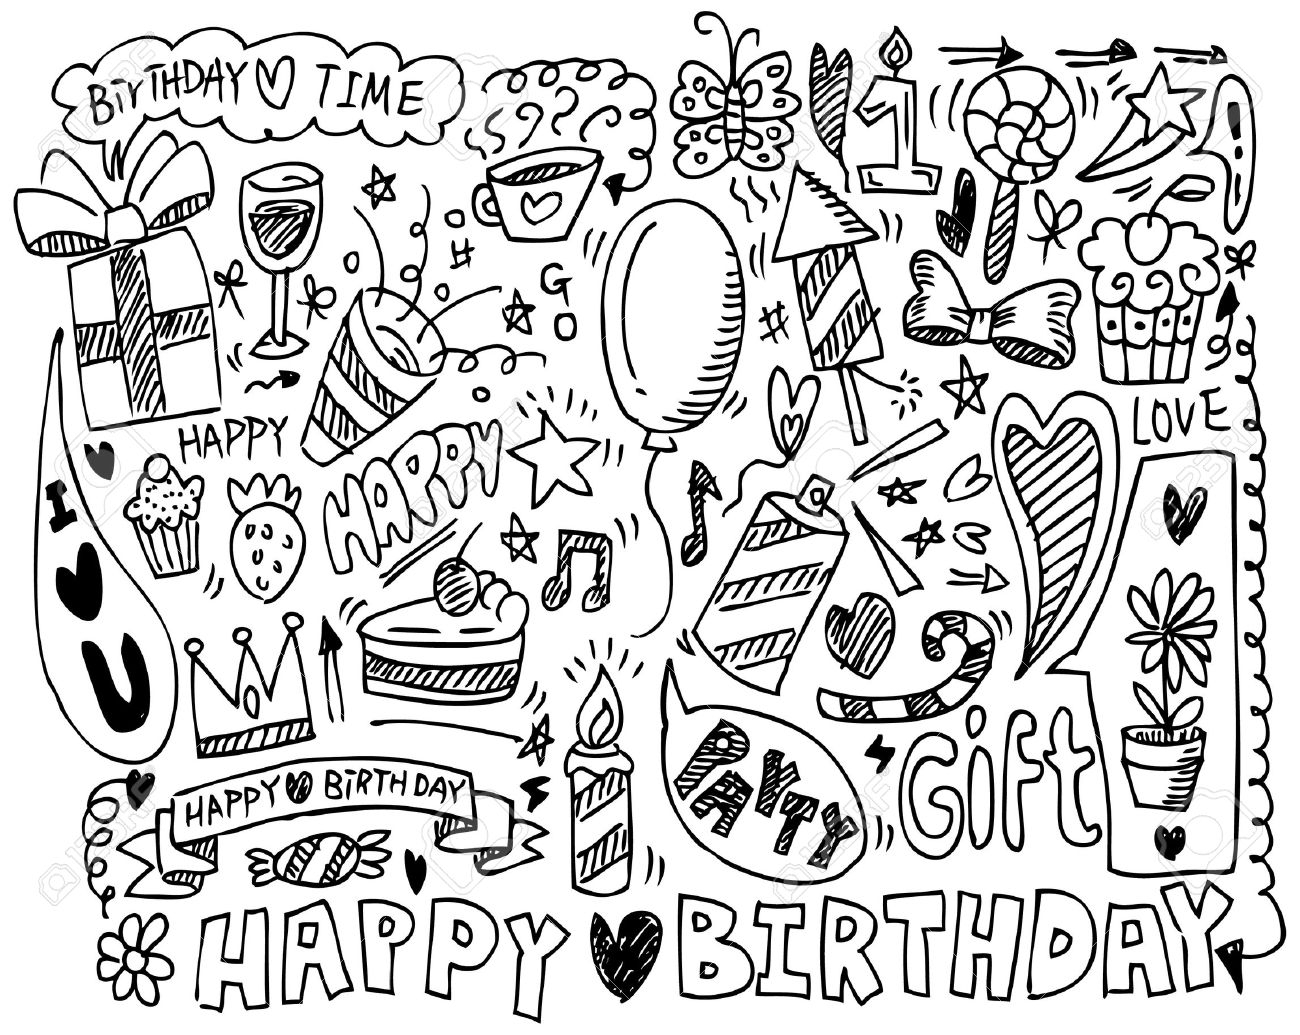 birthday party drawing pictures ; drawing-pictures-of-birthday-party-hand-draw-birthday-element-royalty-free-cliparts-vectors-and